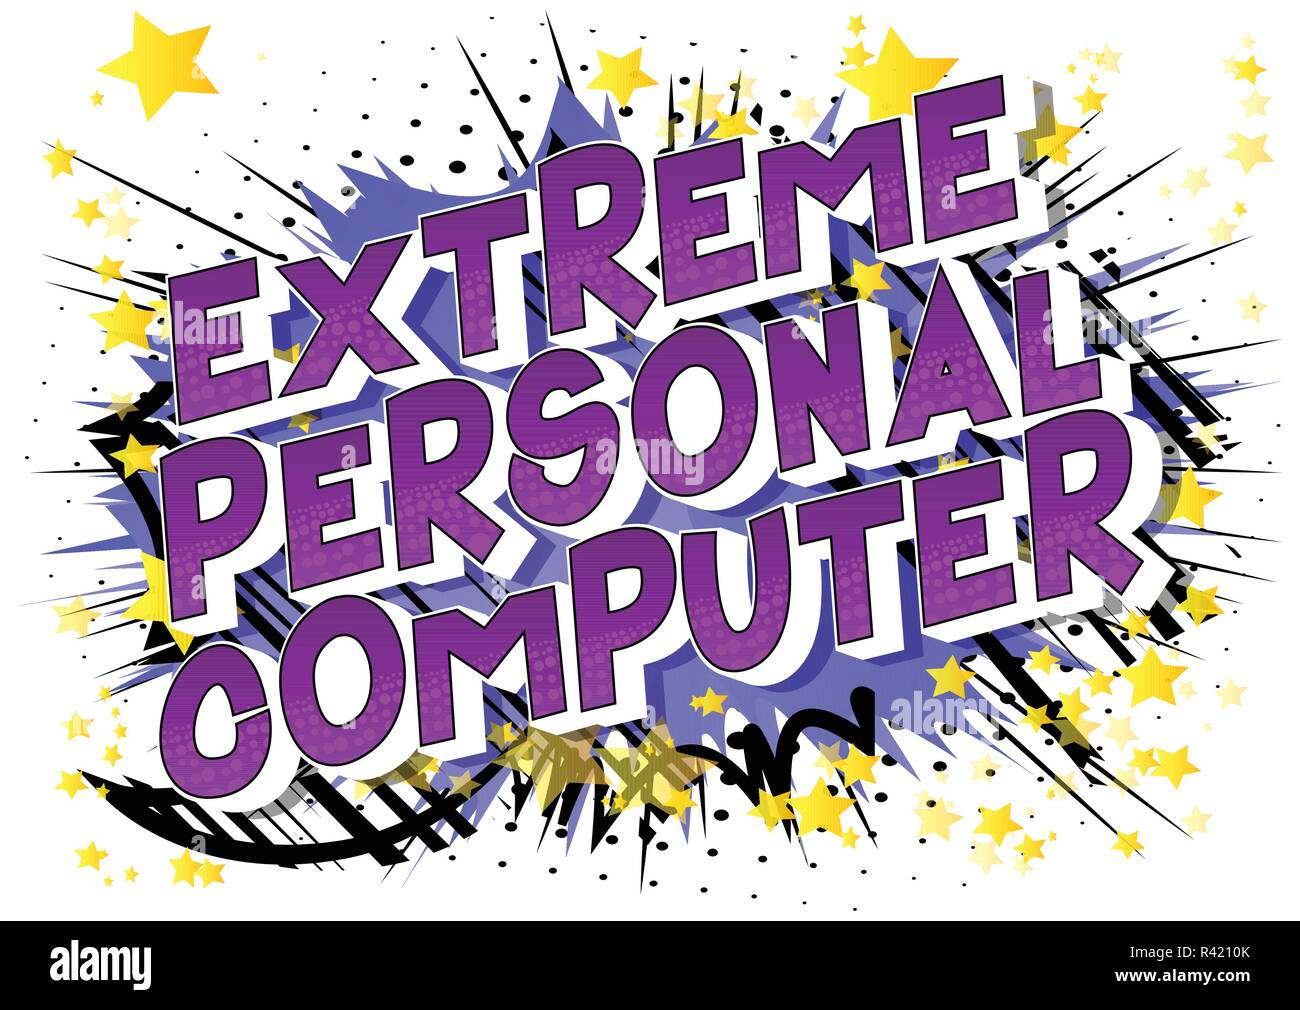 Extreme Personal Computer - Vector illustrated comic book style phrase on abstract background. - Stock Image